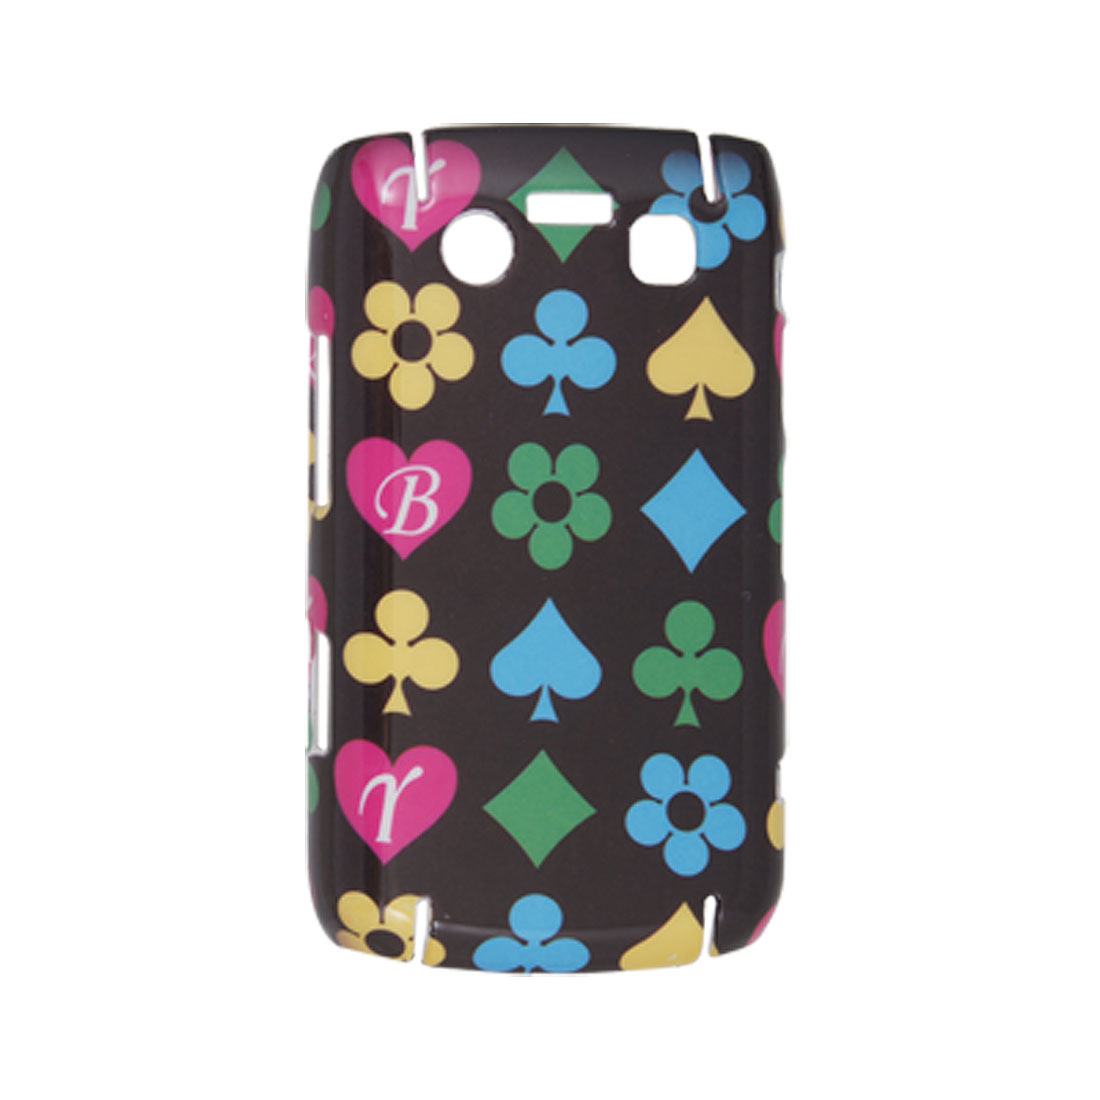 Playing Card Symbols Hard Plastic Back Case for BlackBerry 9700